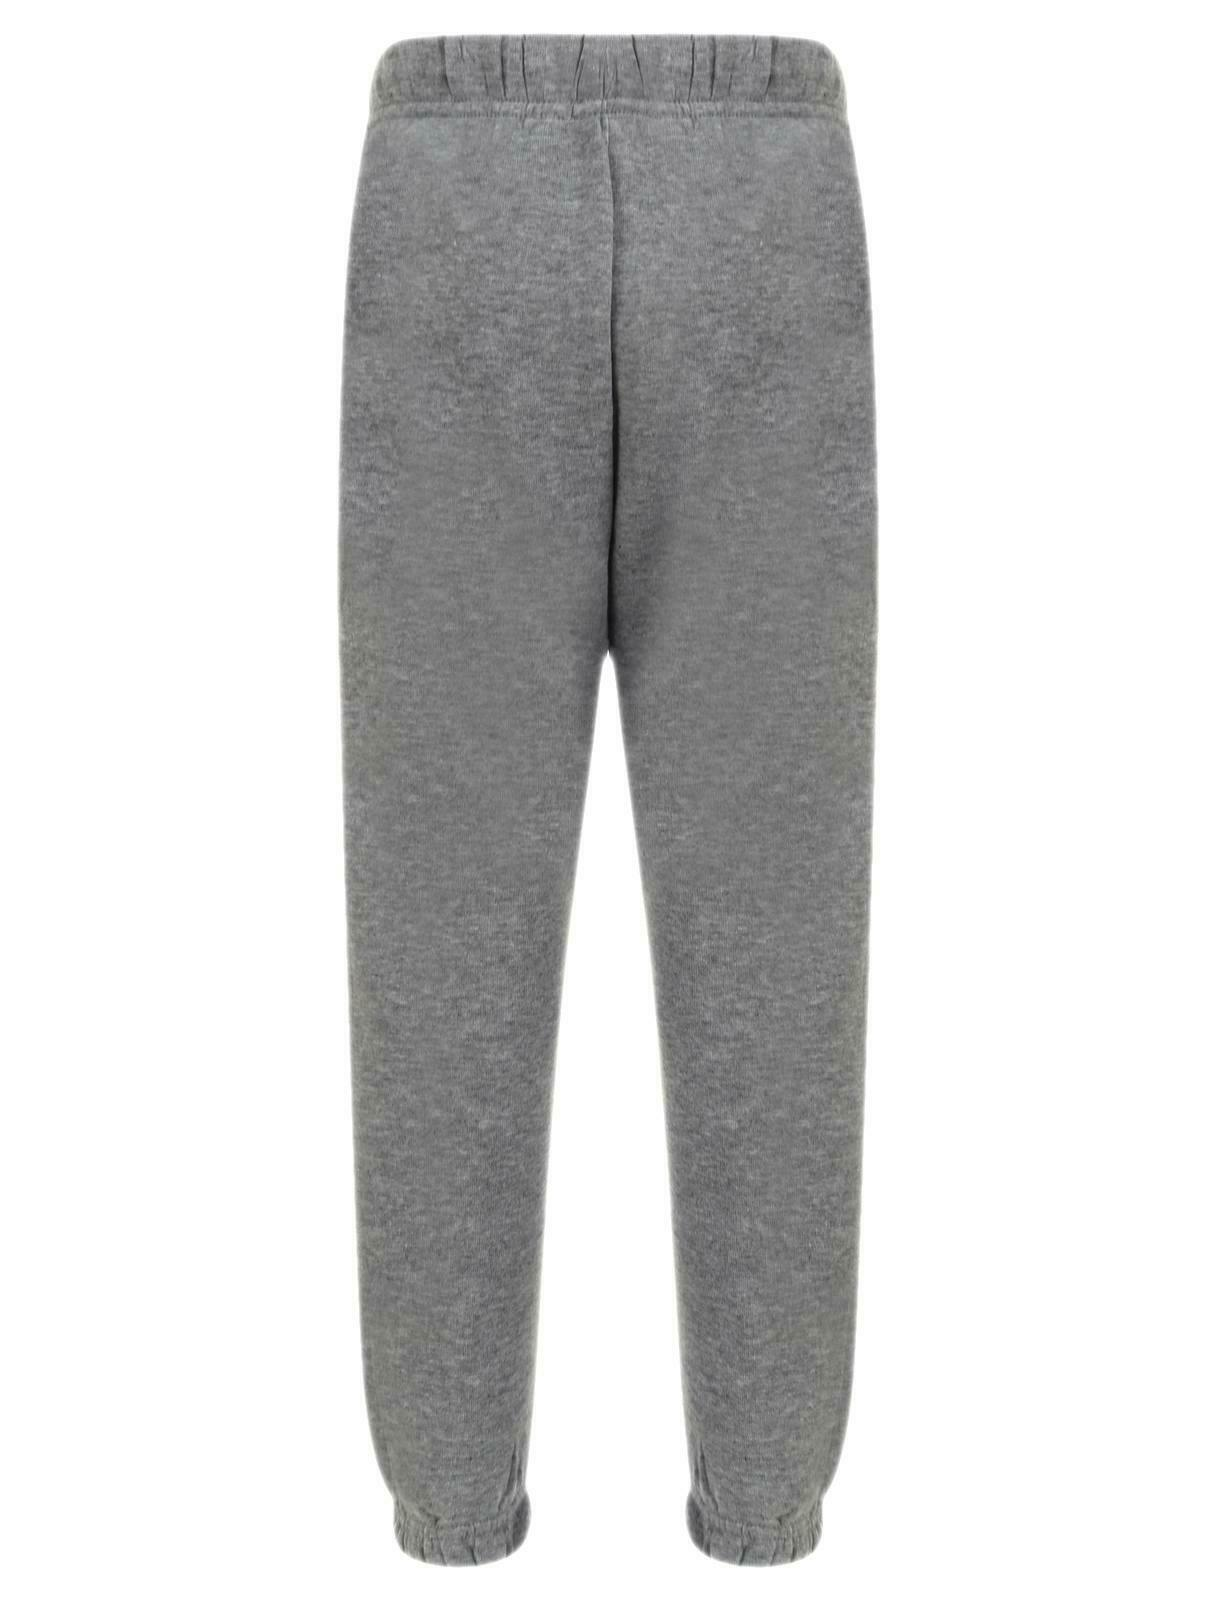 Kids Fleece Trouser Grey (Pack of 12)